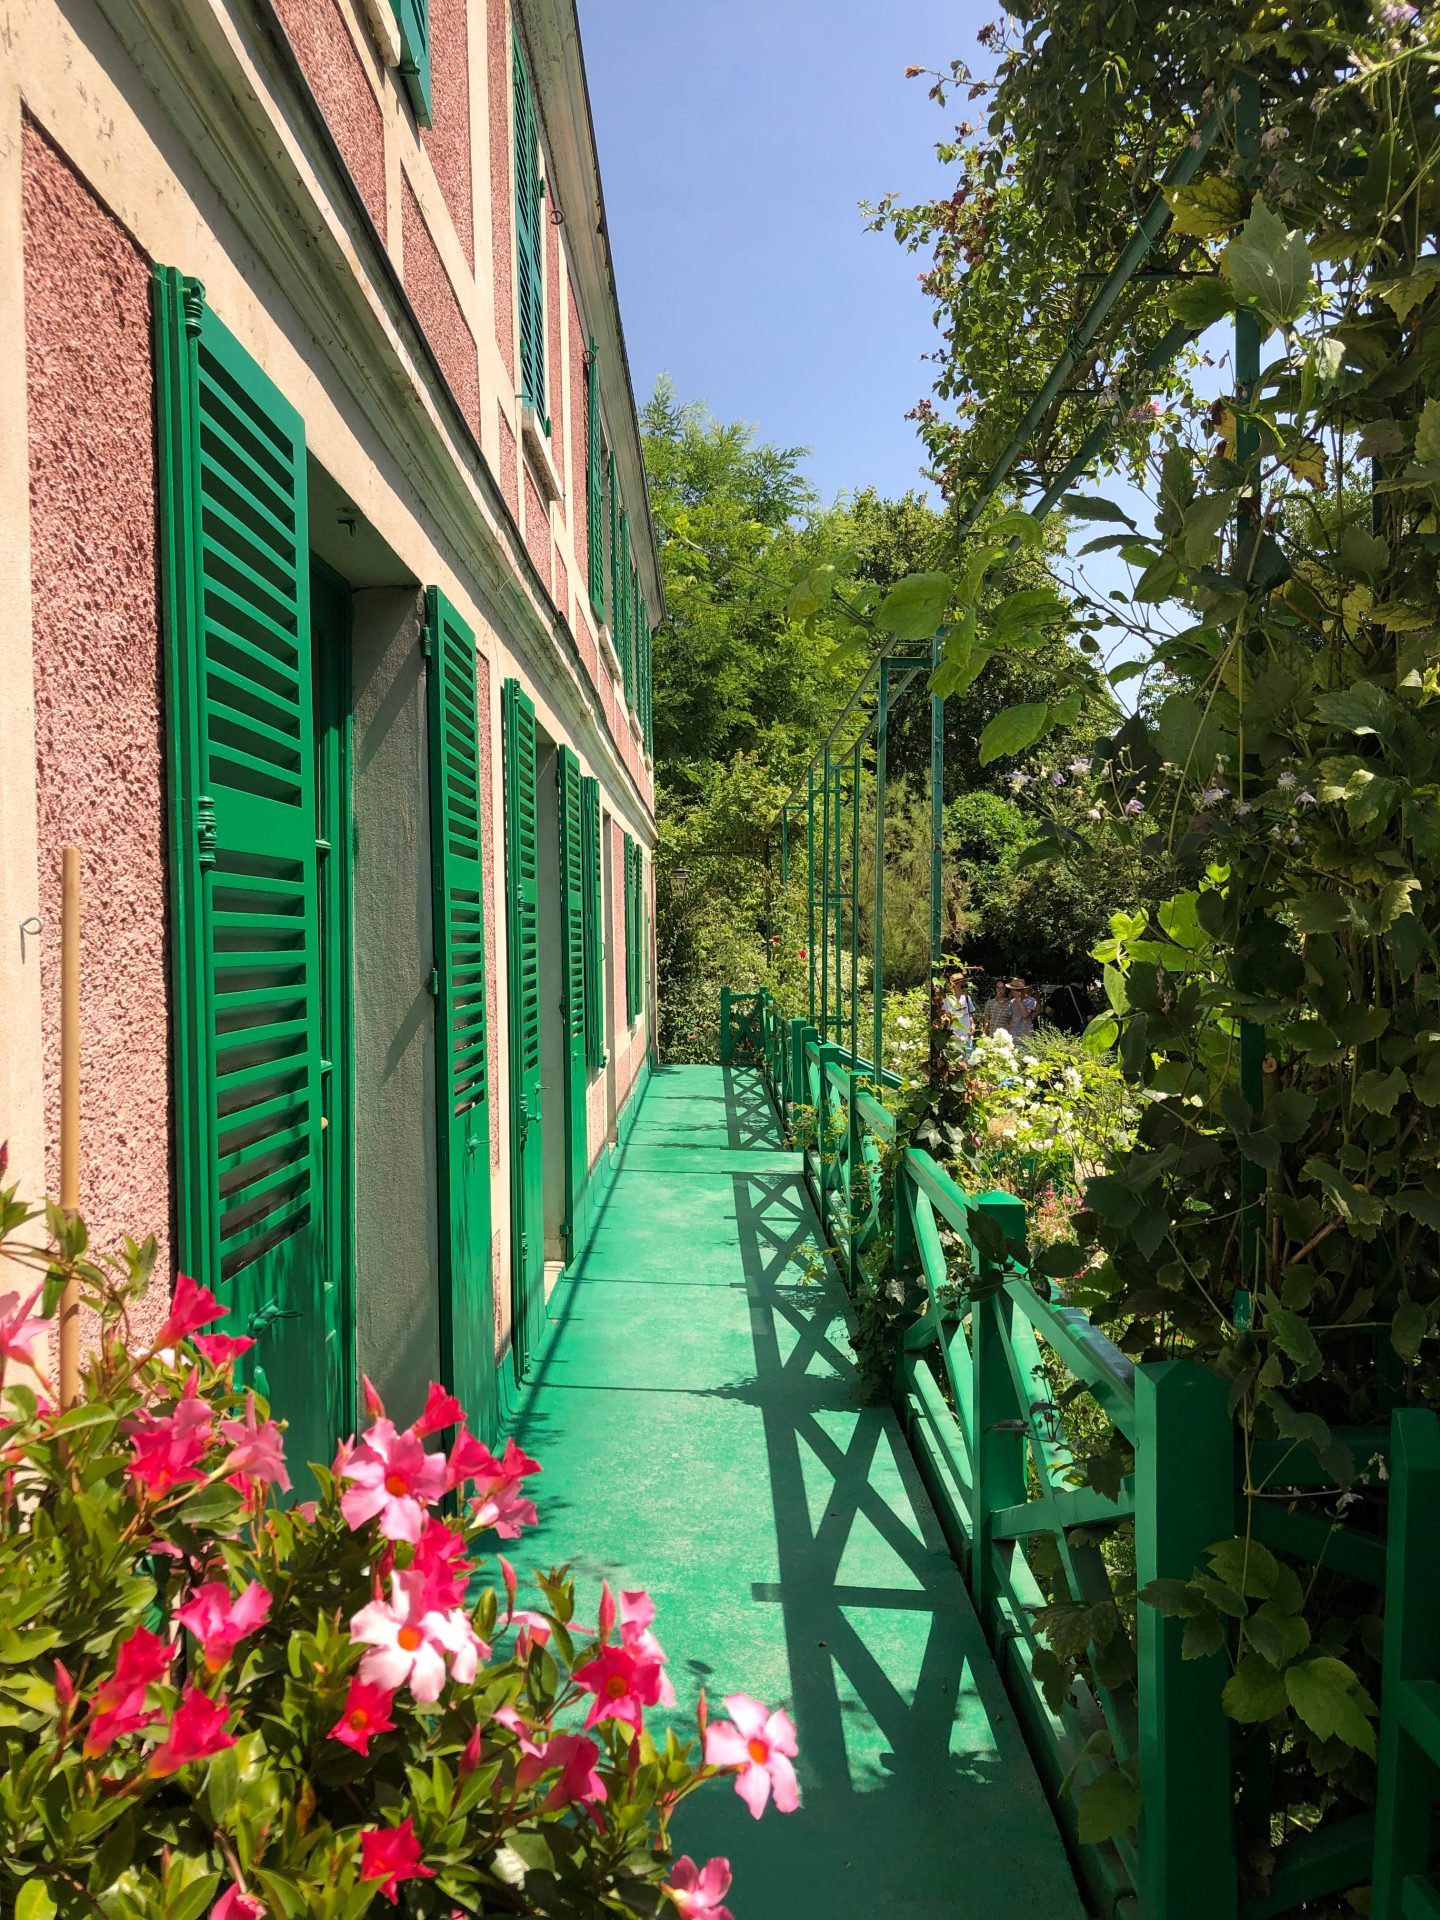 The Veranda of Monet's pink house with green shutters